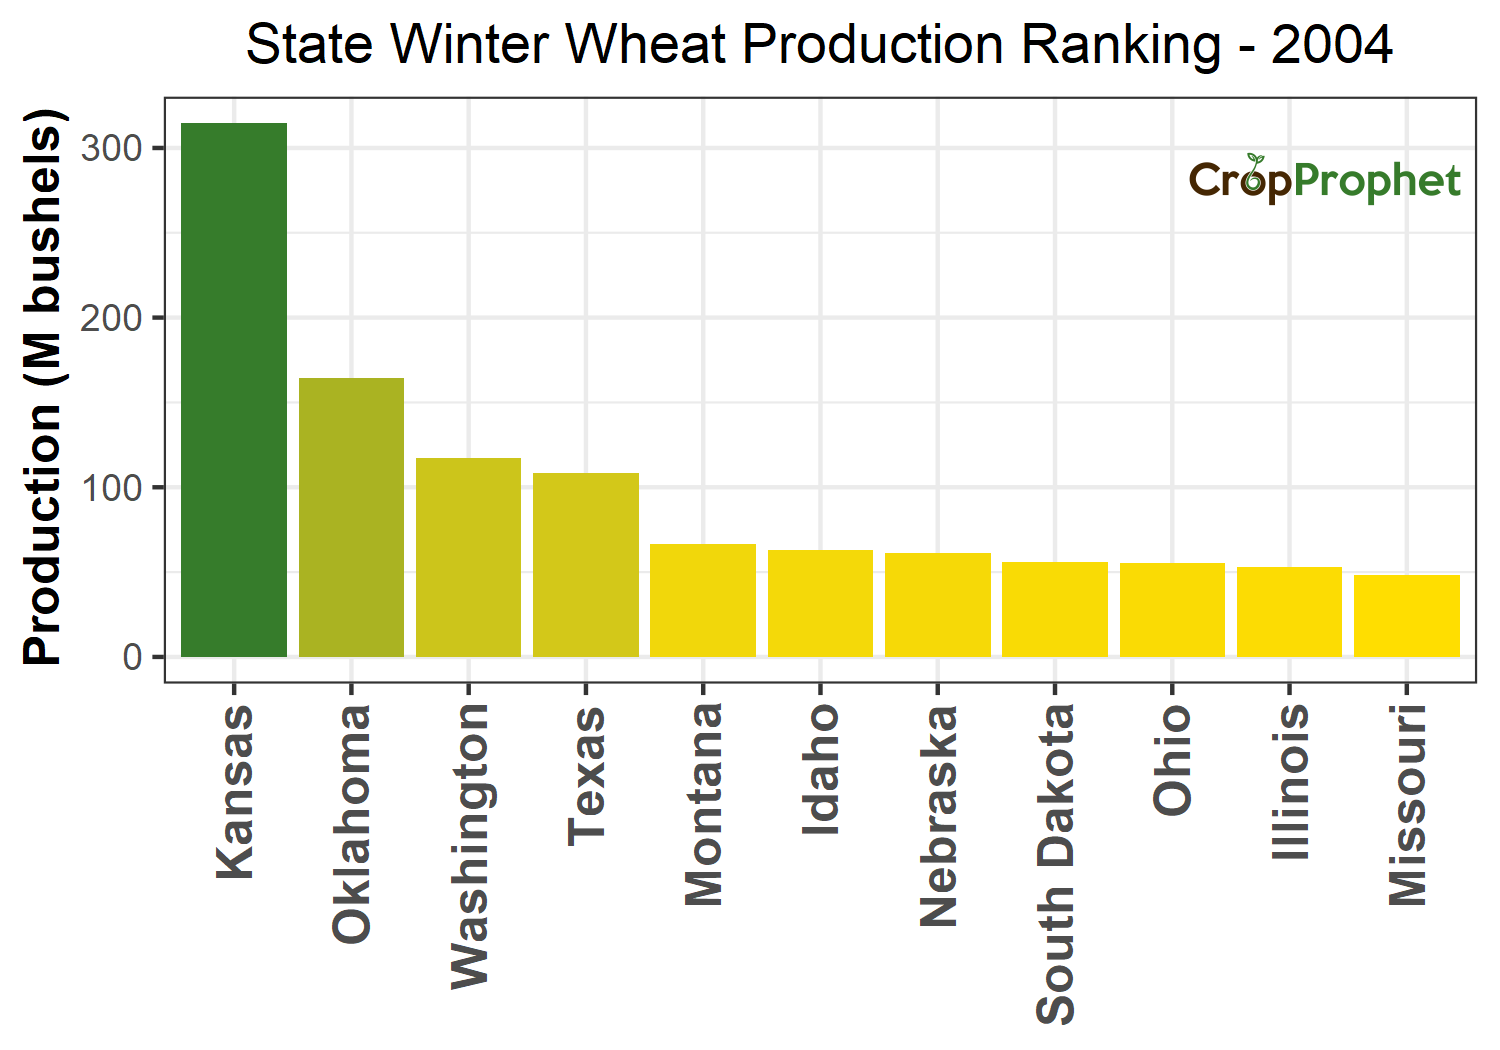 Winter wheat Production by State - 2004 Rankings